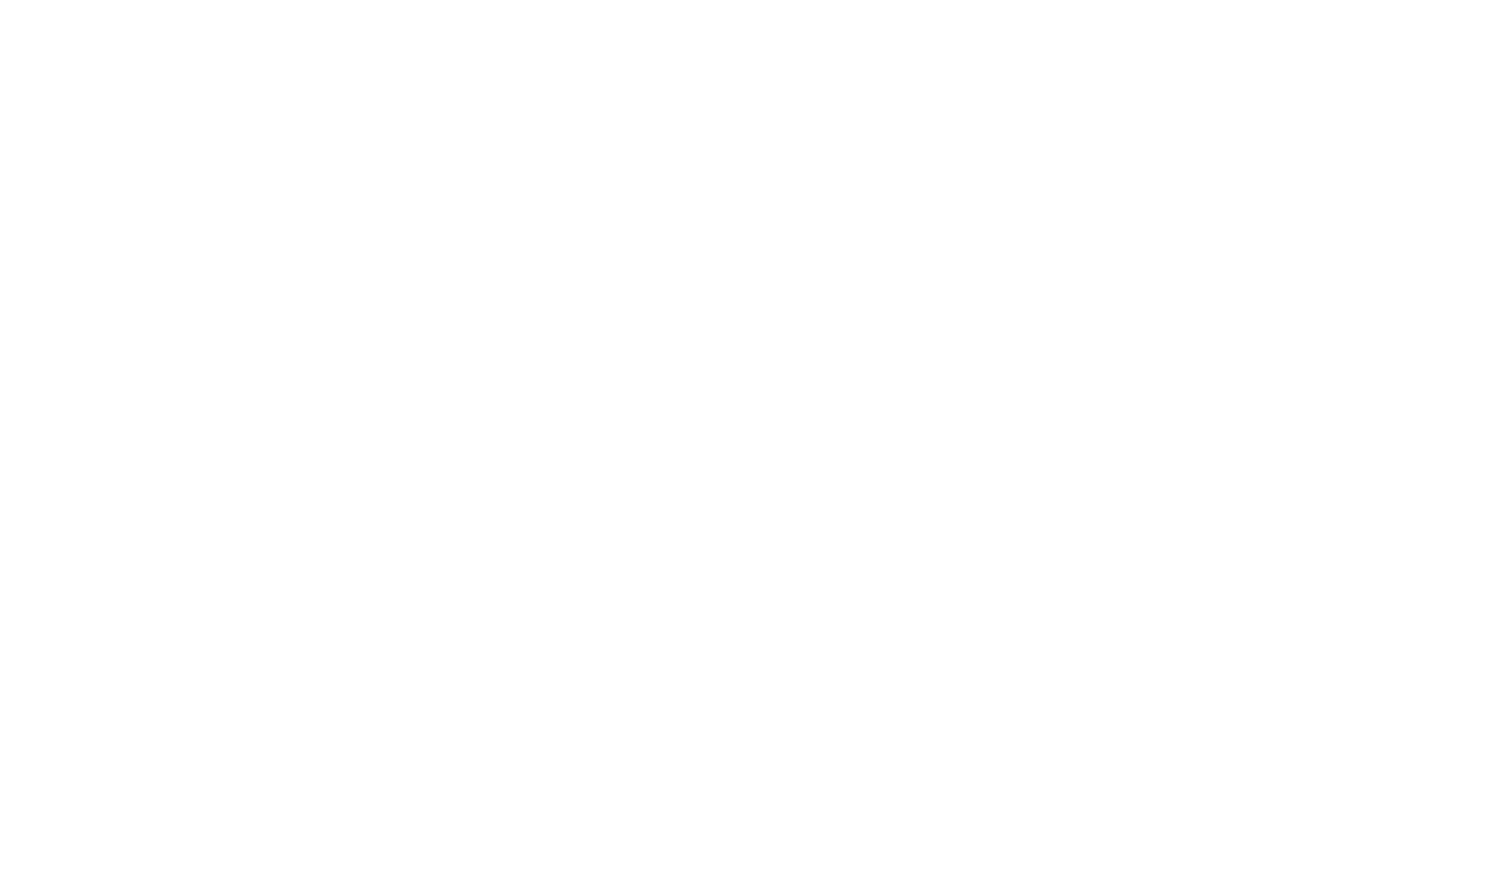 The Ohio Chapter of Illuman